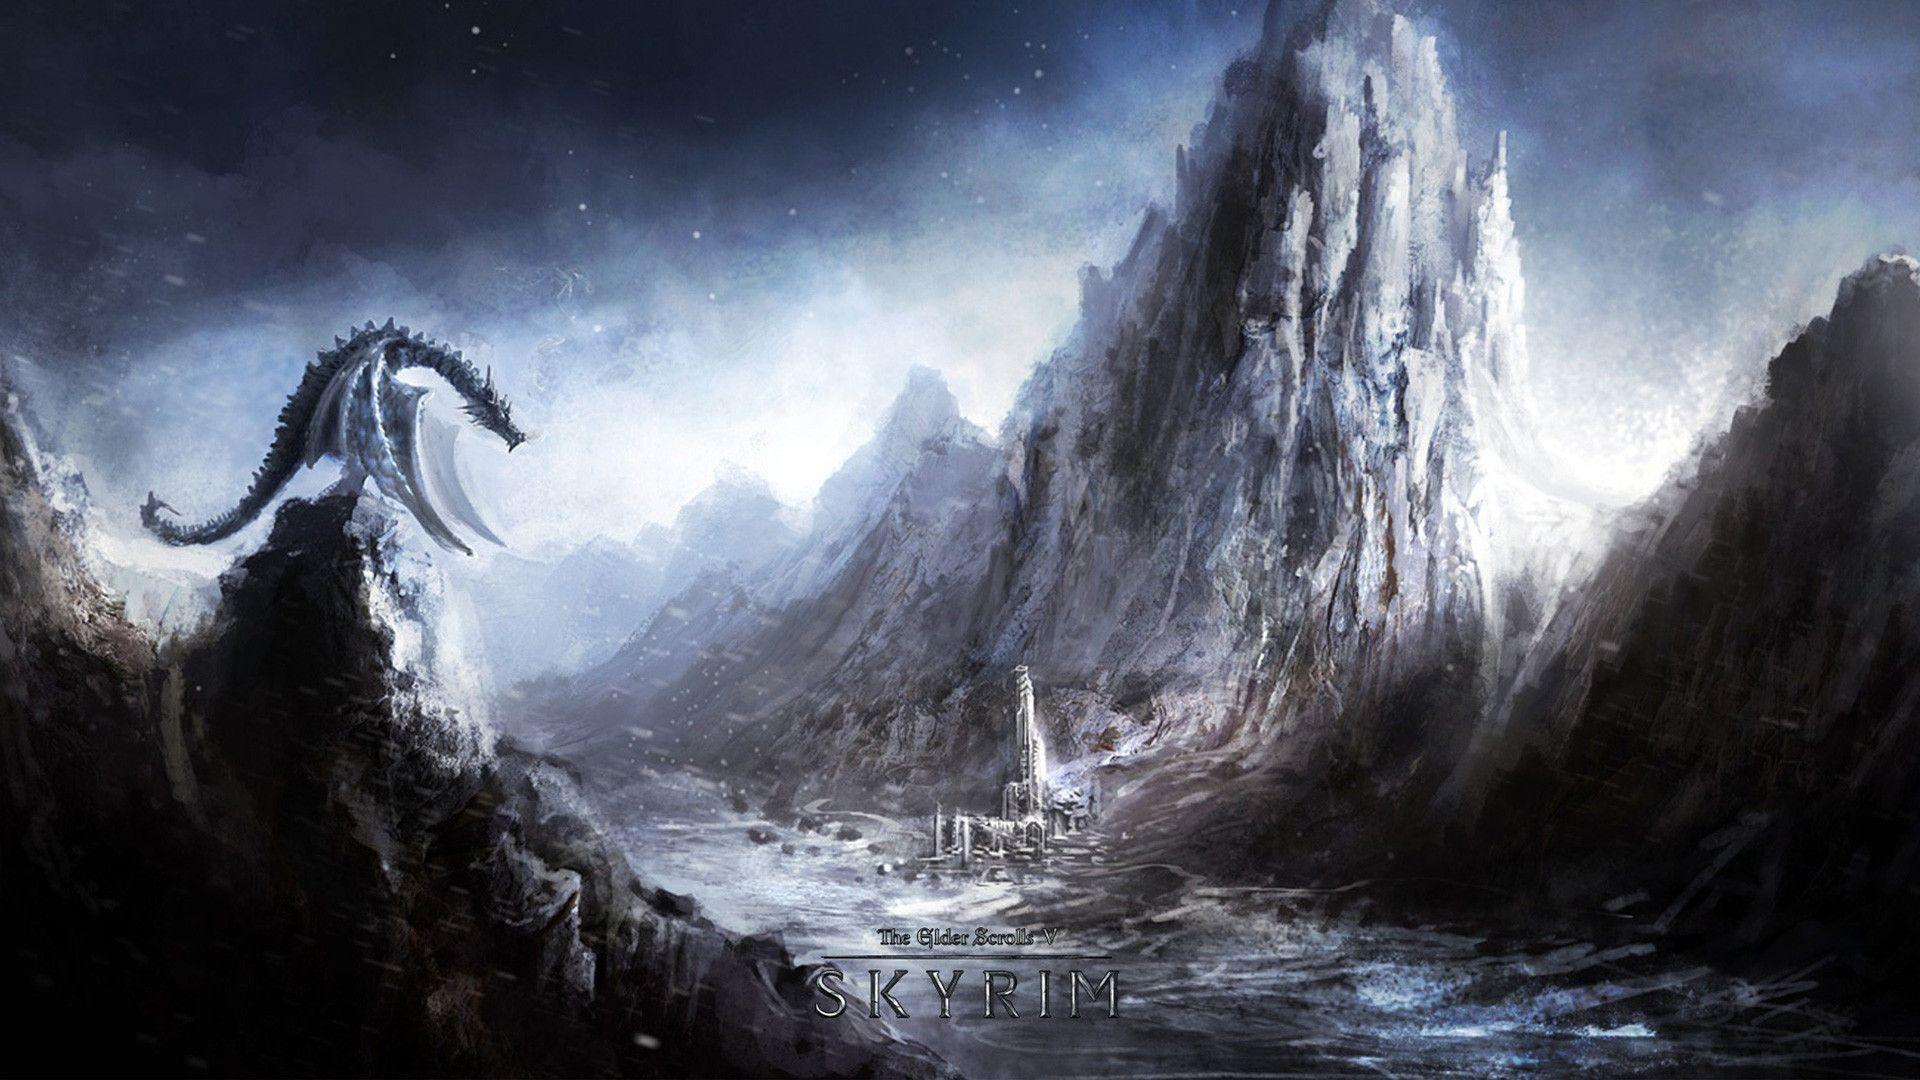 cool skyrim backgrounds, skyrim wallpaper hd 1080p